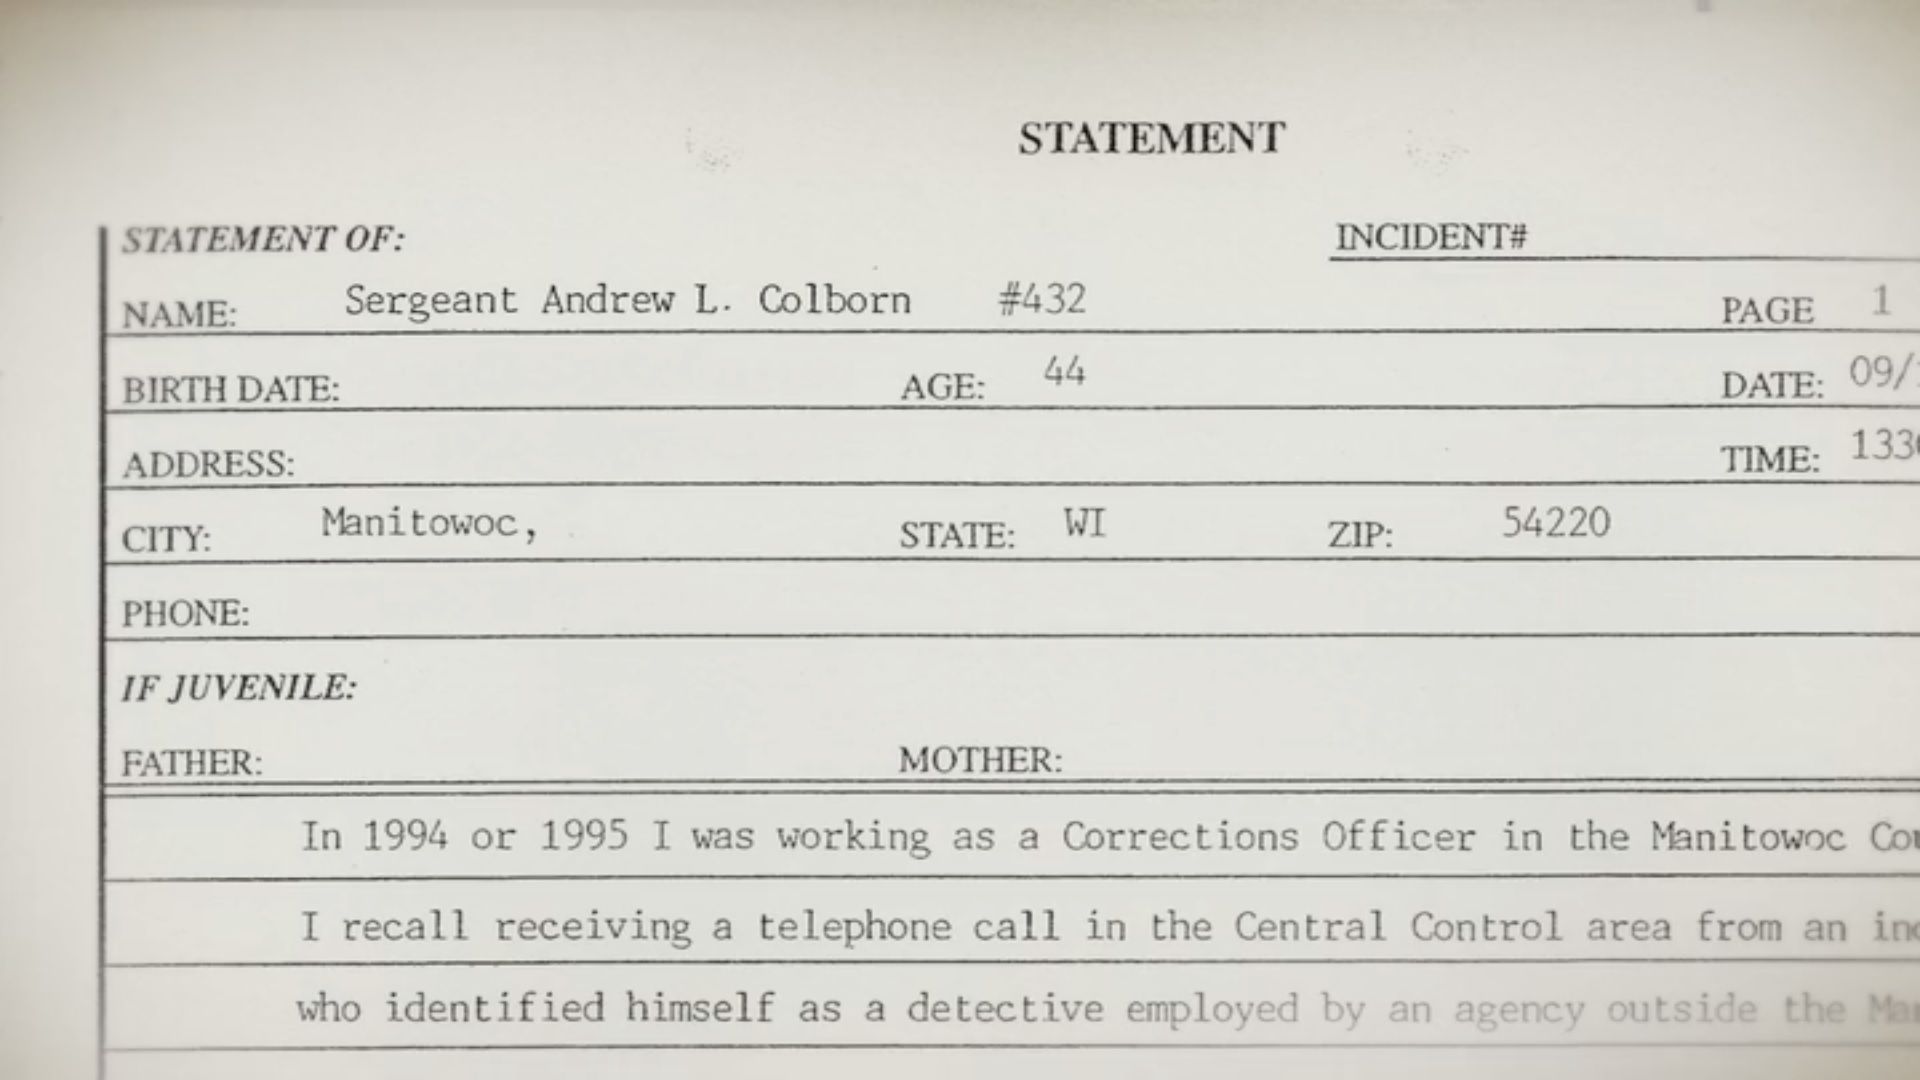 The report filed by Colborn